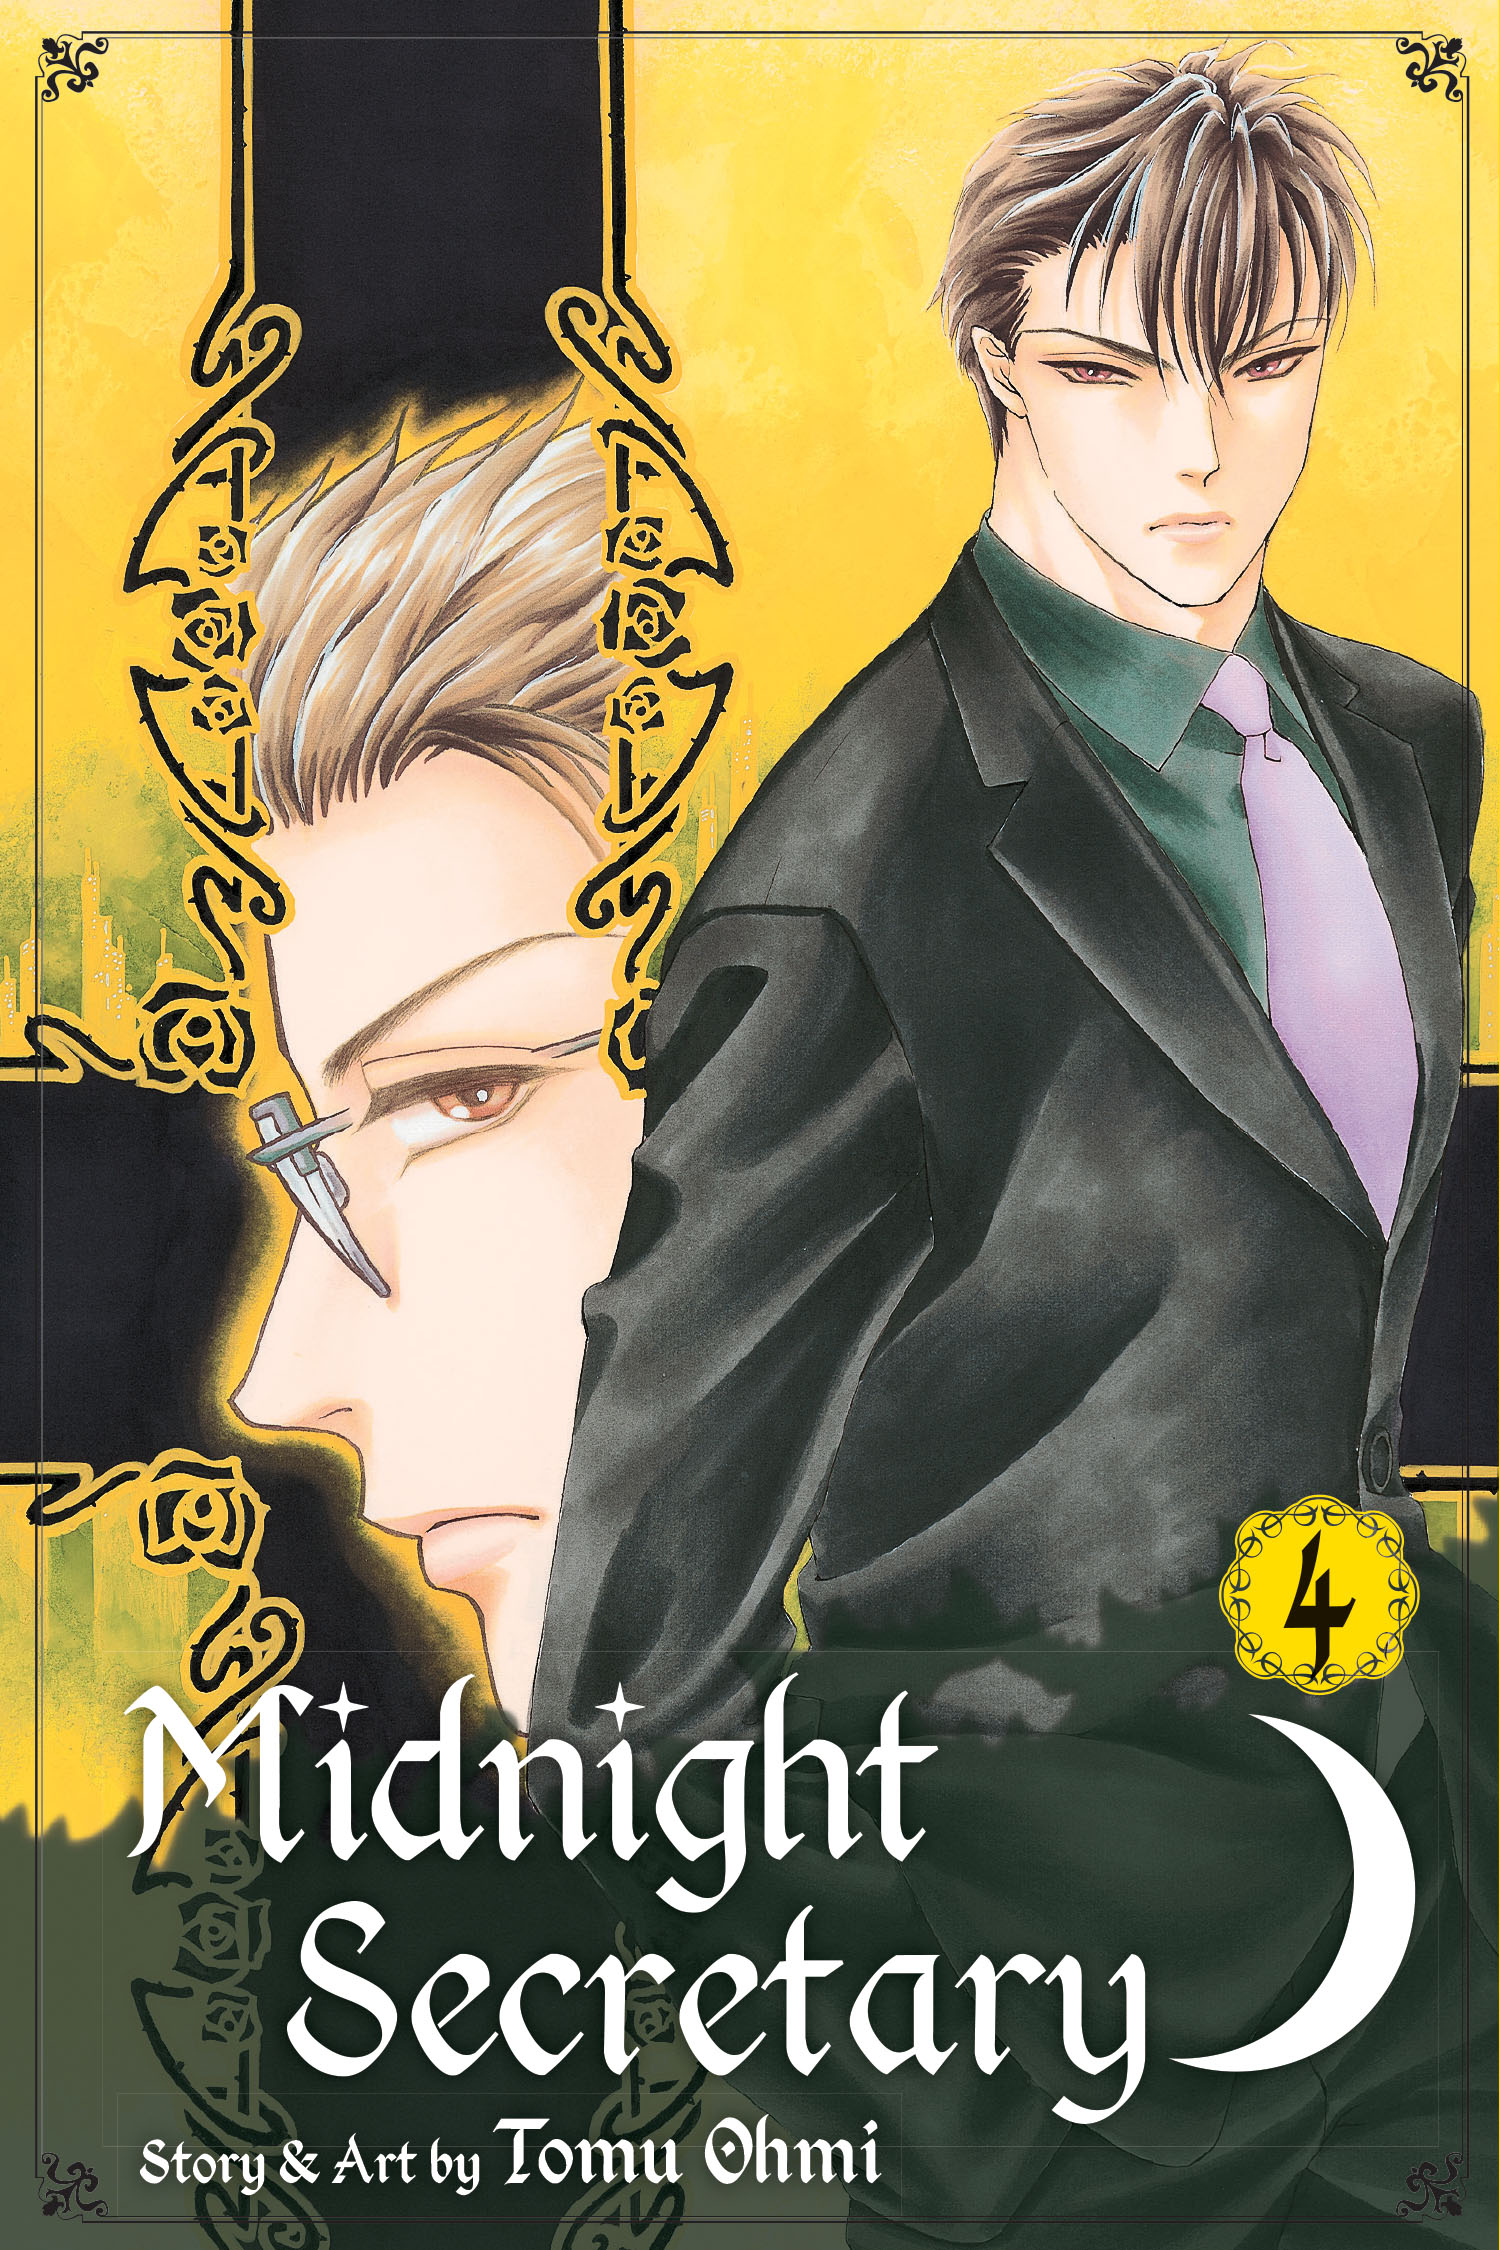 midnight secretary vol 4 book by tomu ohmi official